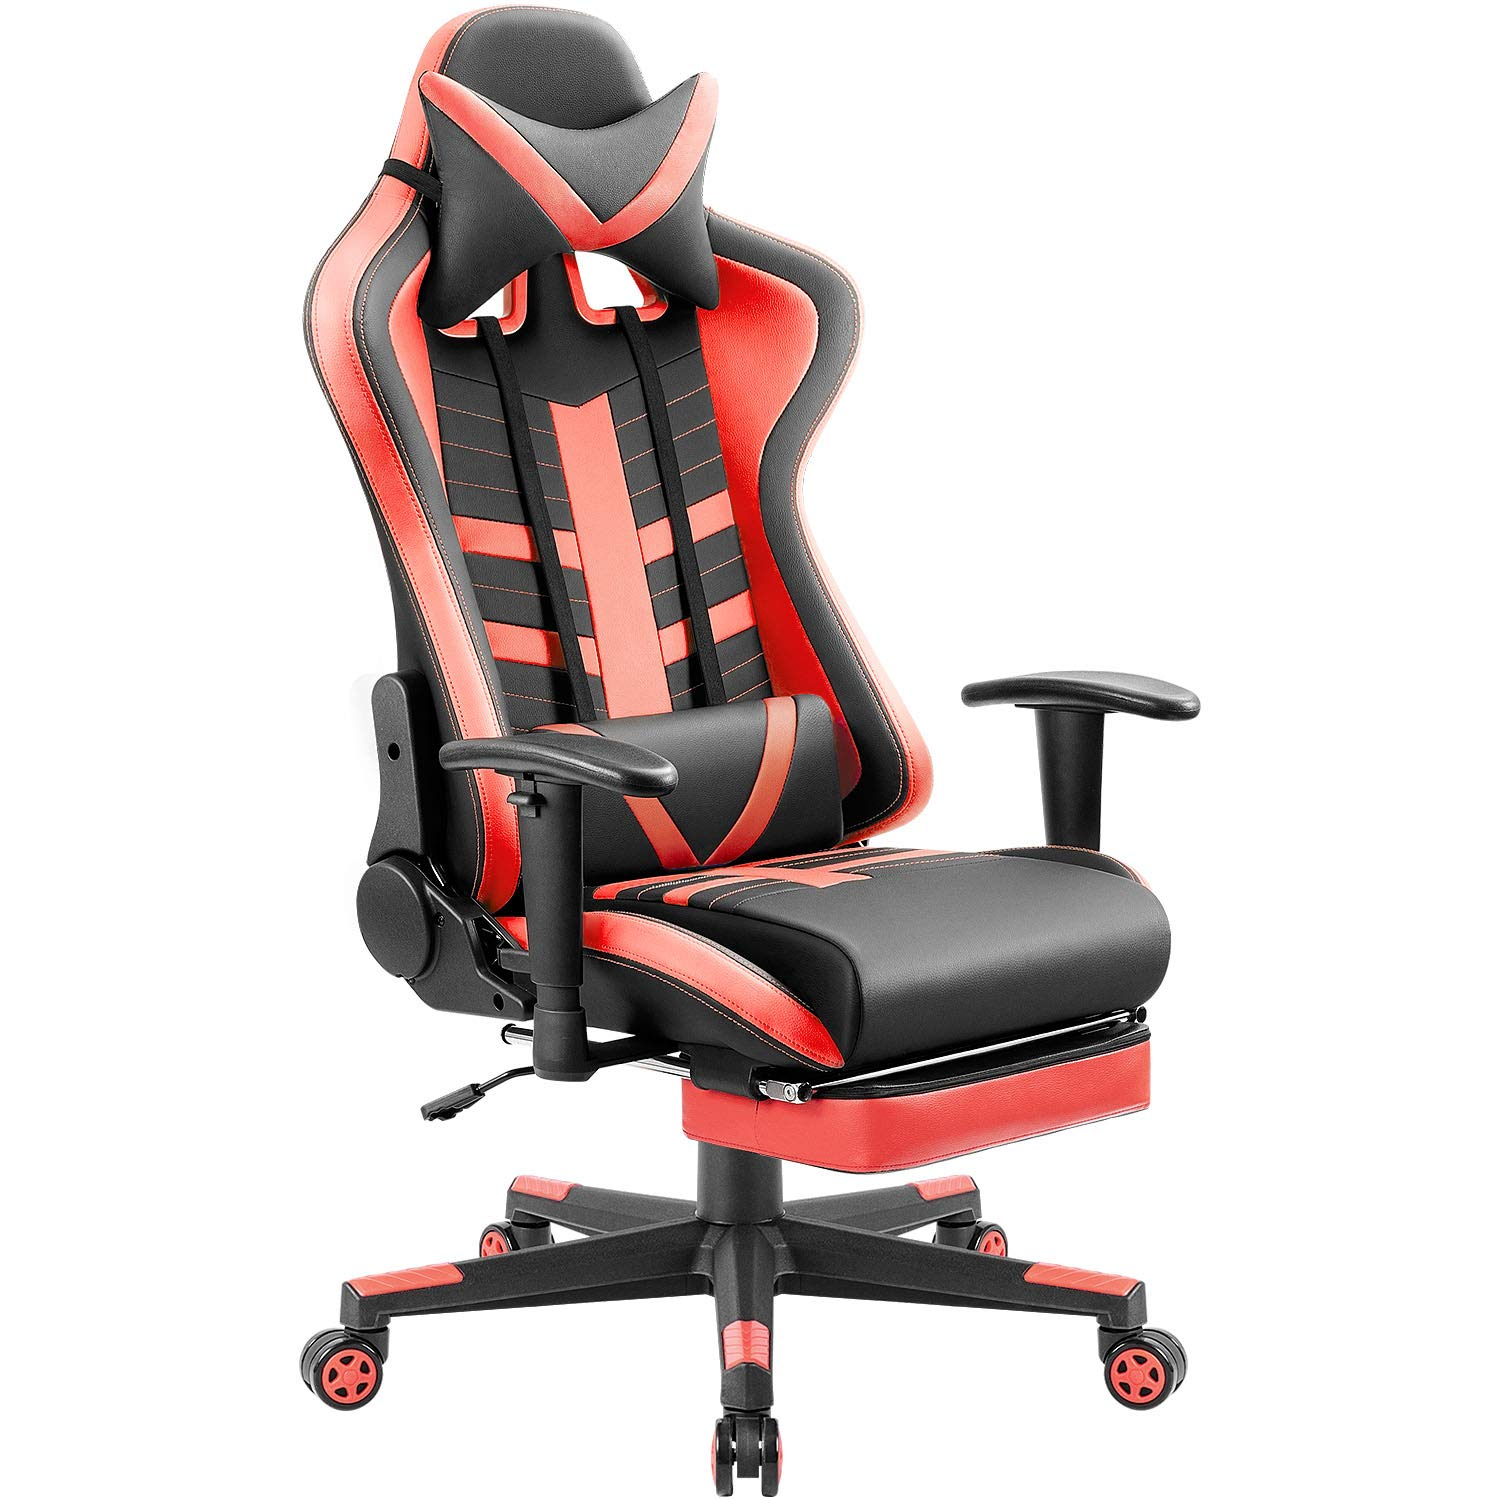 Homall Ergonomic High-Back Racing Chair   Leather Bucket Seat, Headrest, Footrest and Lumbar Support   Black & Blue